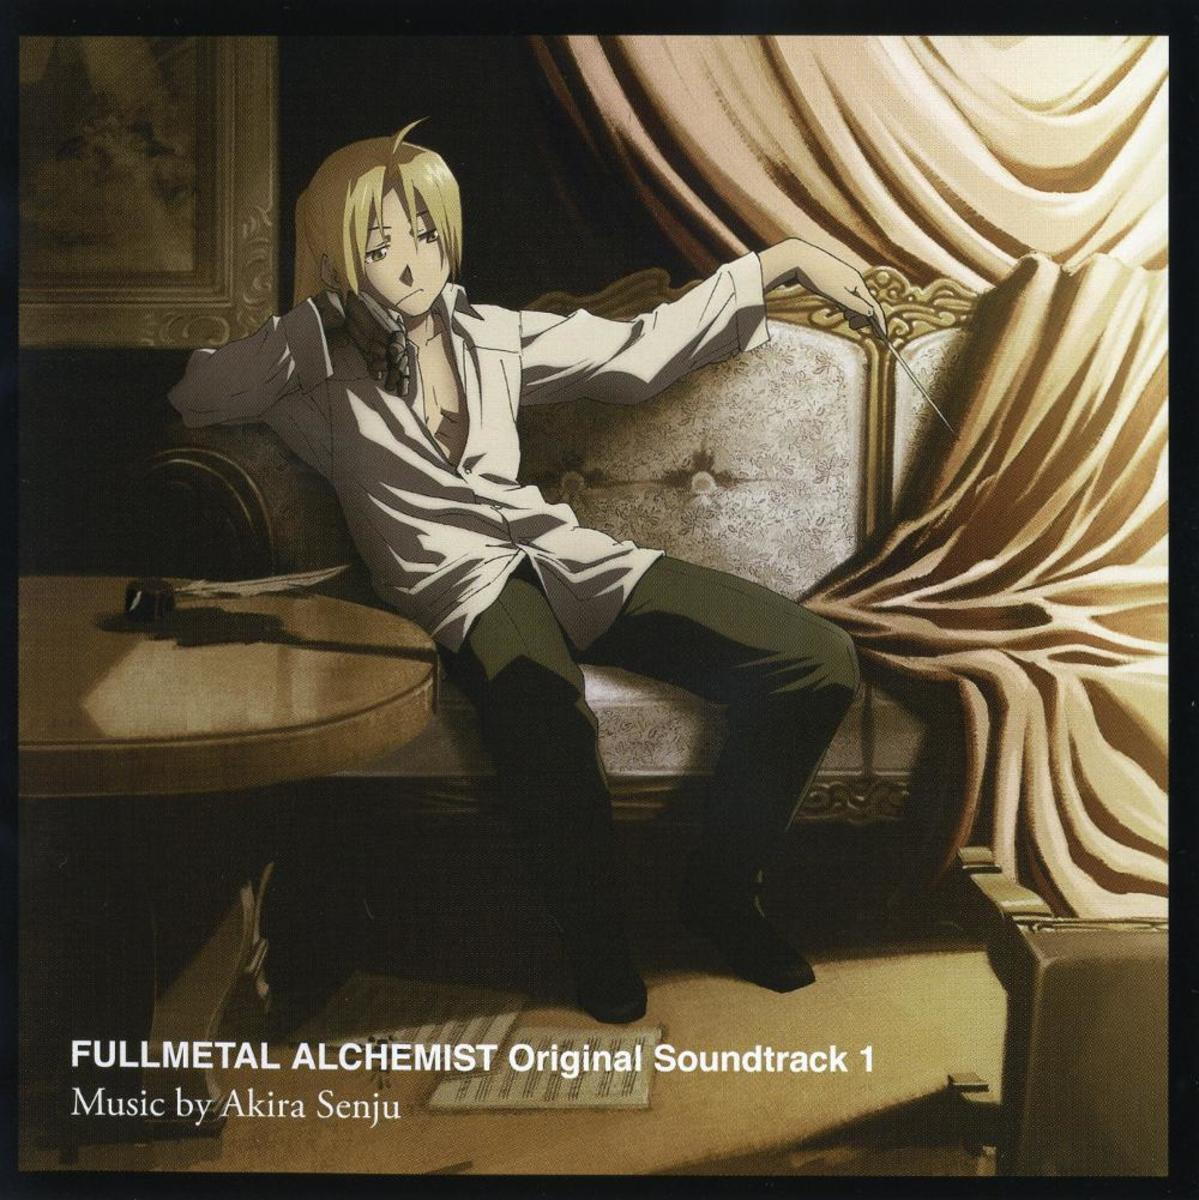 Fullmetal Alchemist Brotherhood Original Soundtrack 1